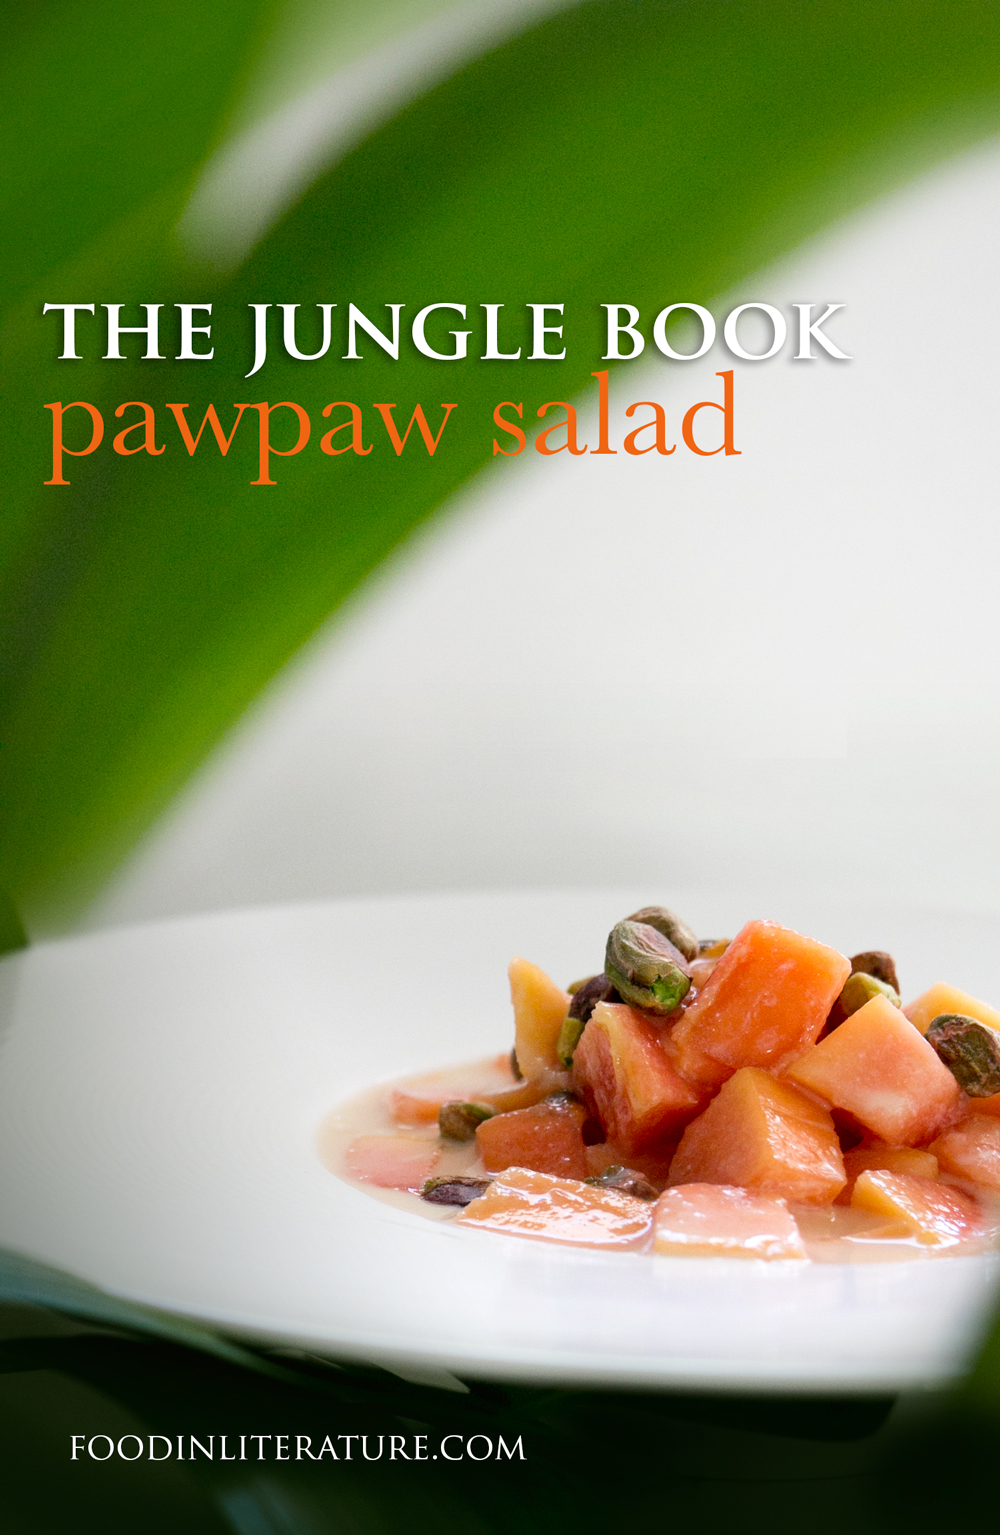 Big PawPaw Salad |The Jungle Book